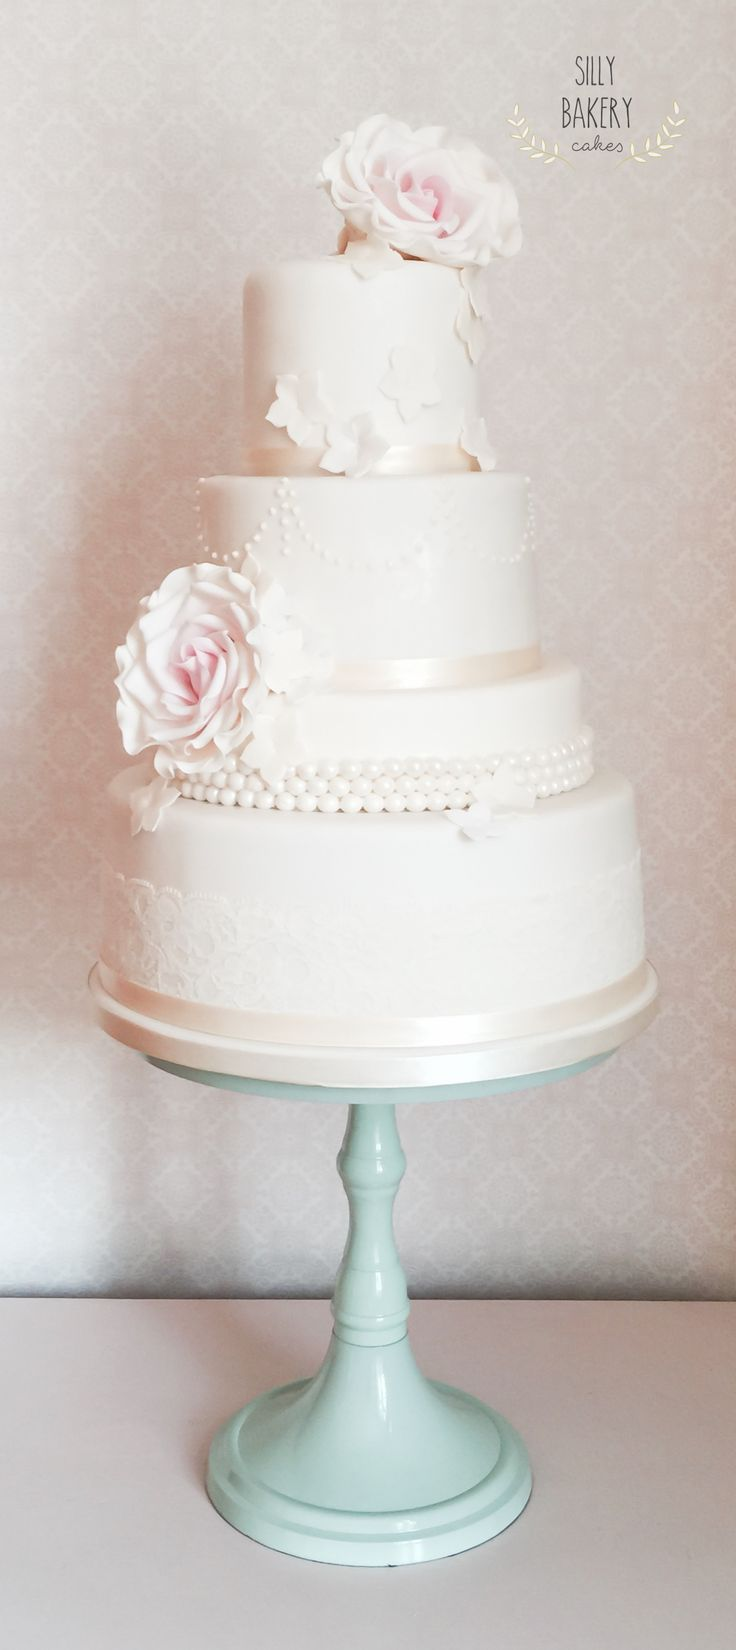 Vintage Wedding Cake Cakestand Silly Bakery Silly